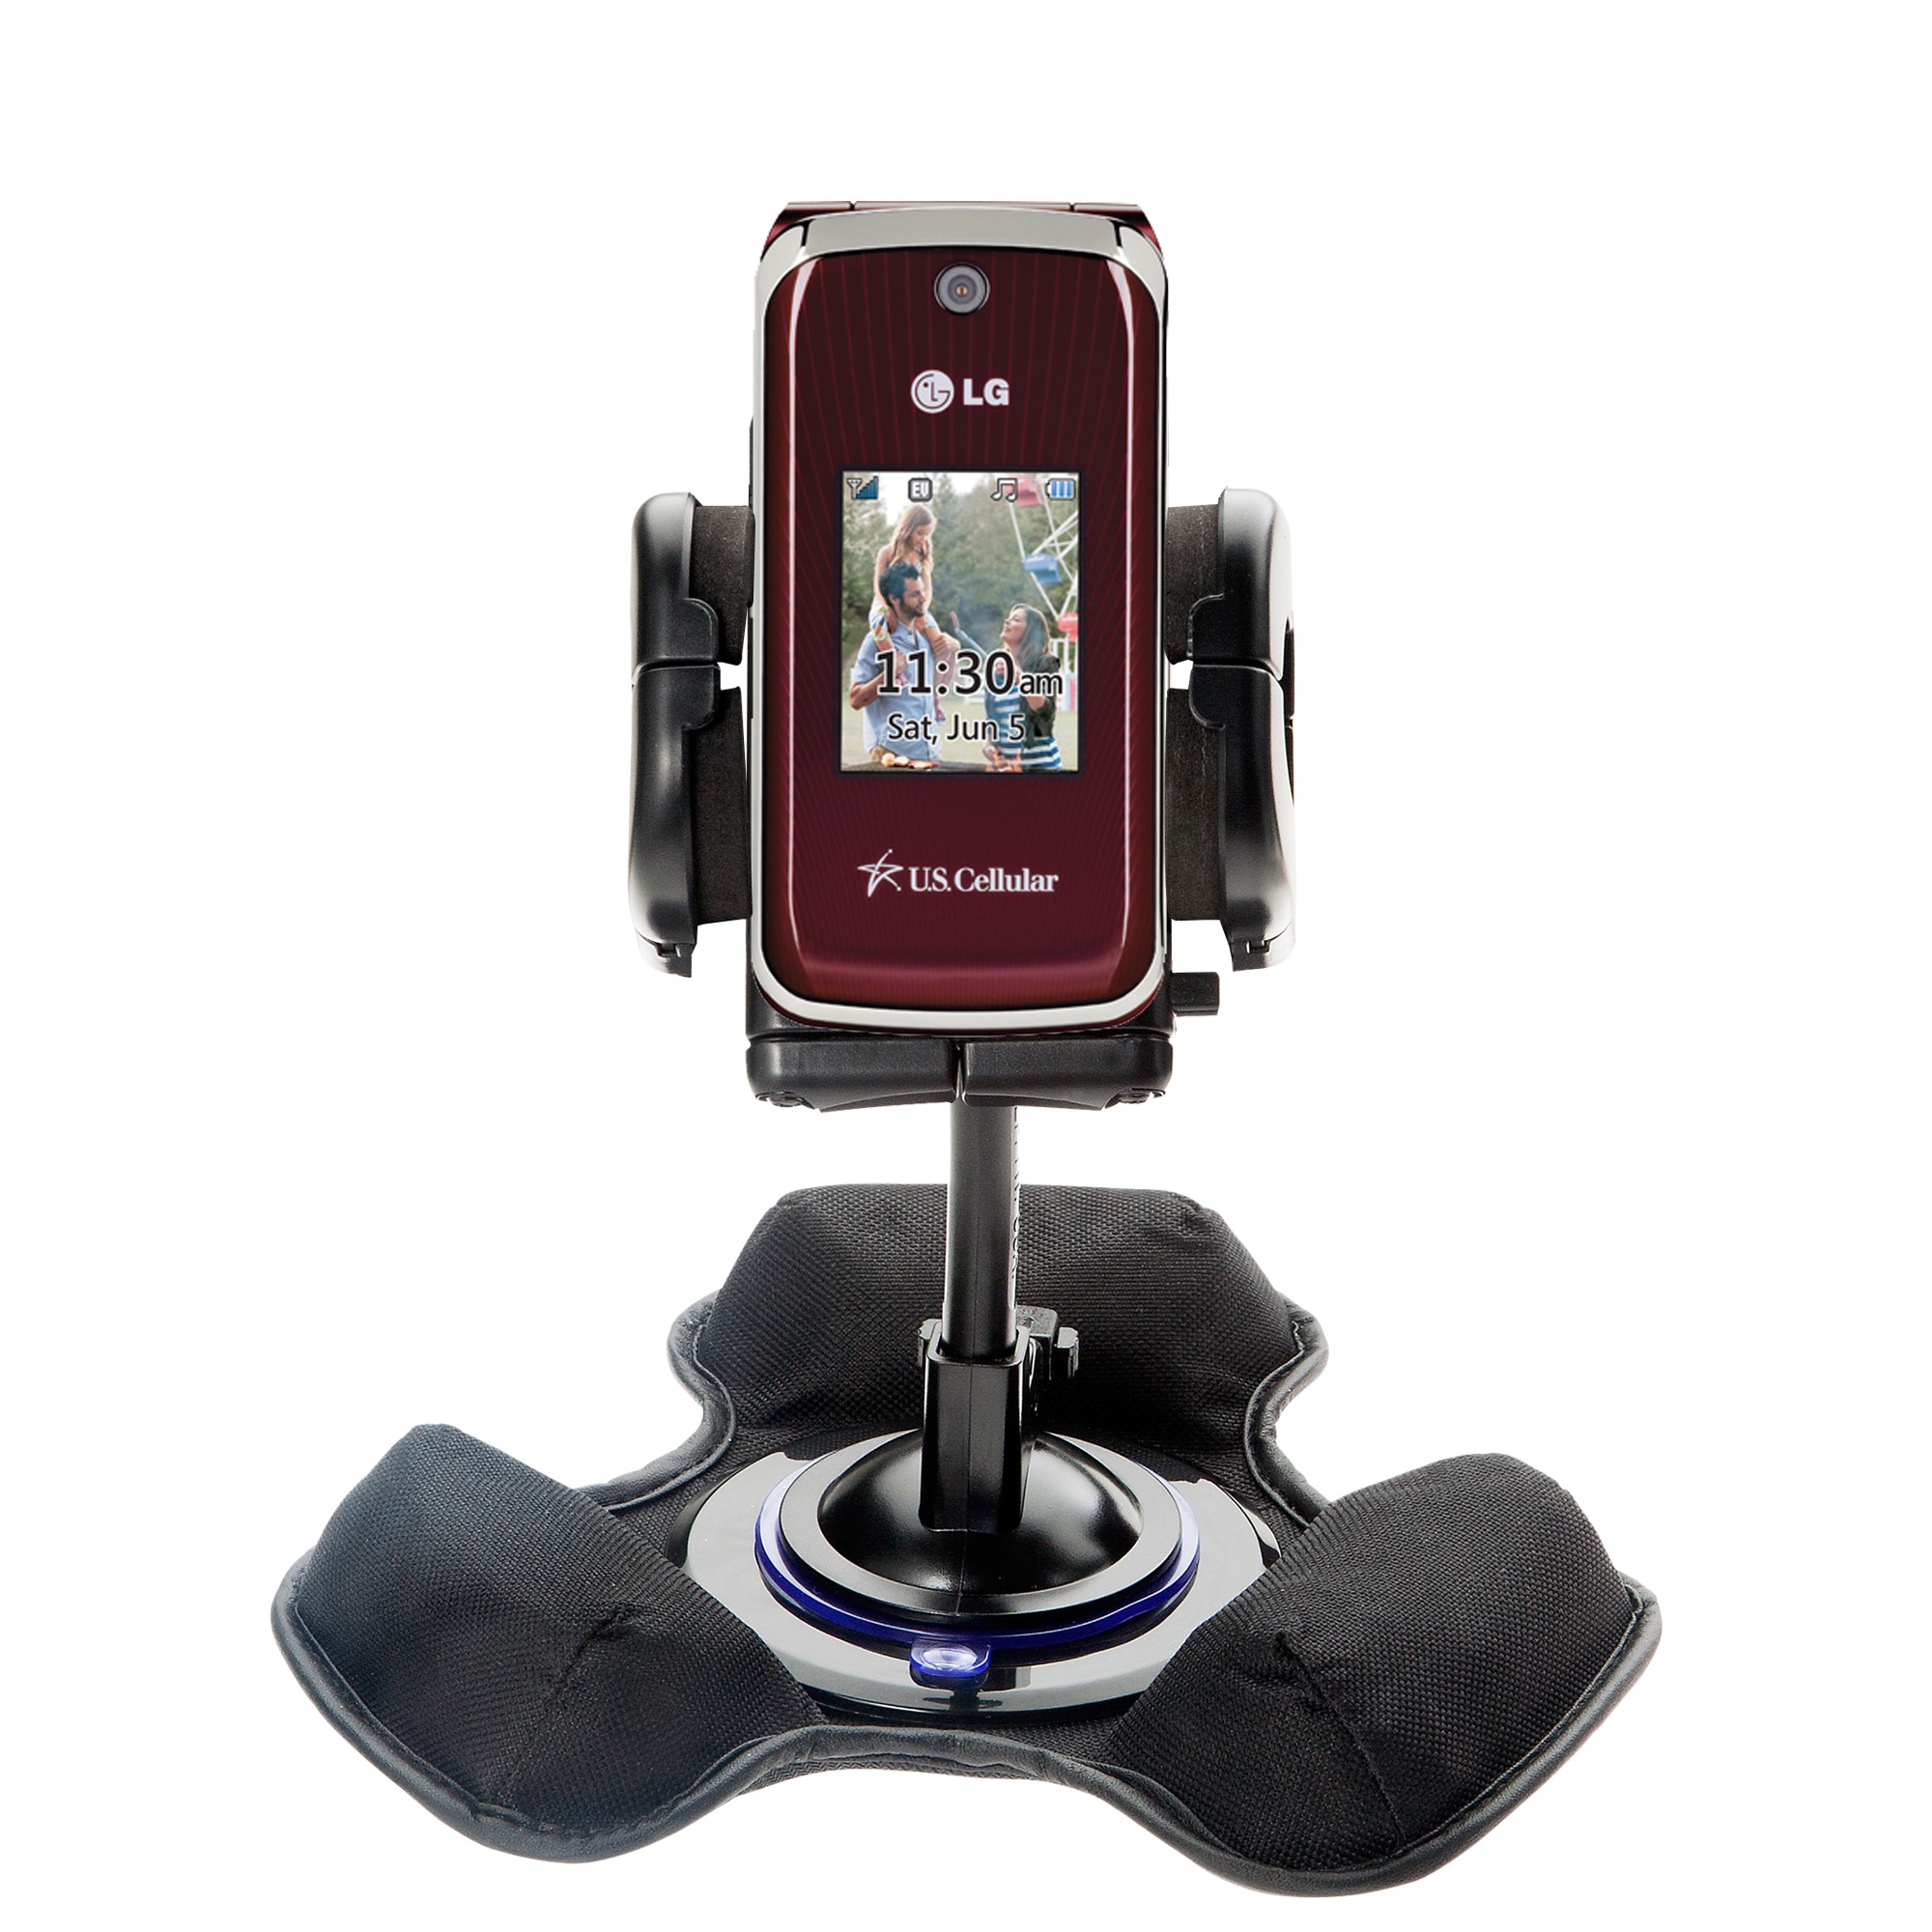 Dash and Windshield Holder compatible with the LG Wine II